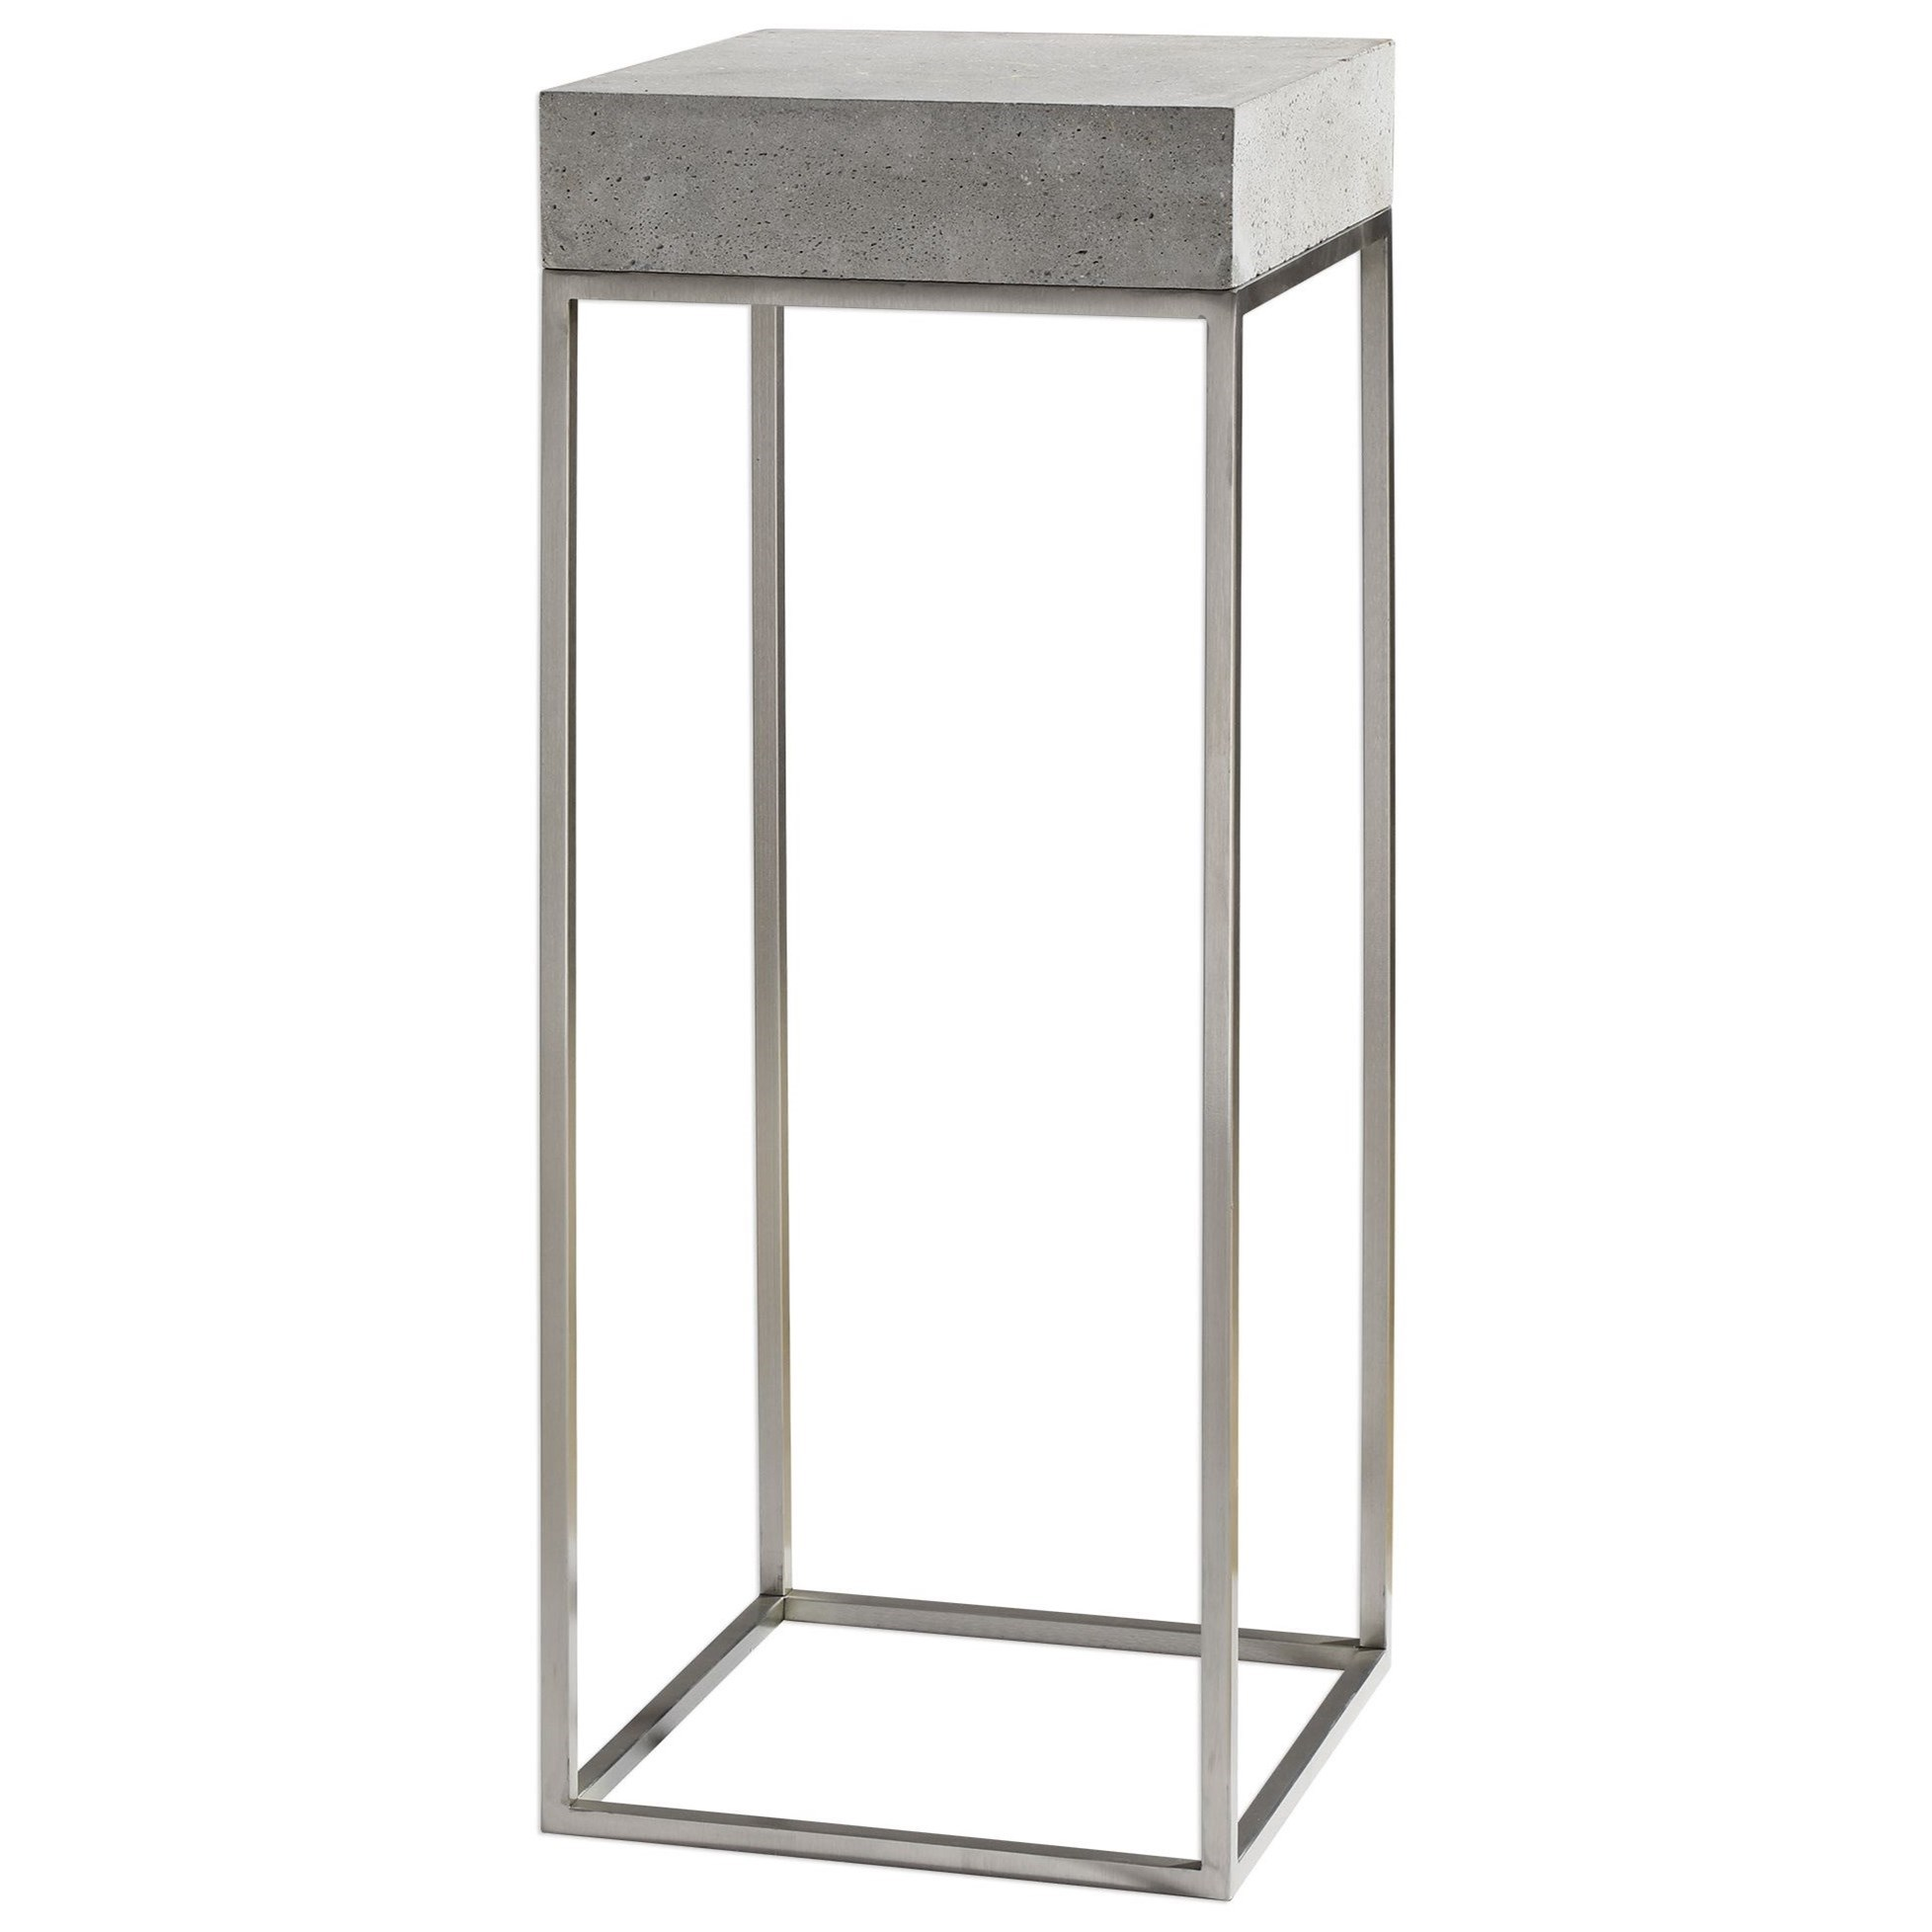 Accent Furniture - Occasional Tables Jude Industrial Modern Plant Stand by Uttermost at O'Dunk & O'Bright Furniture